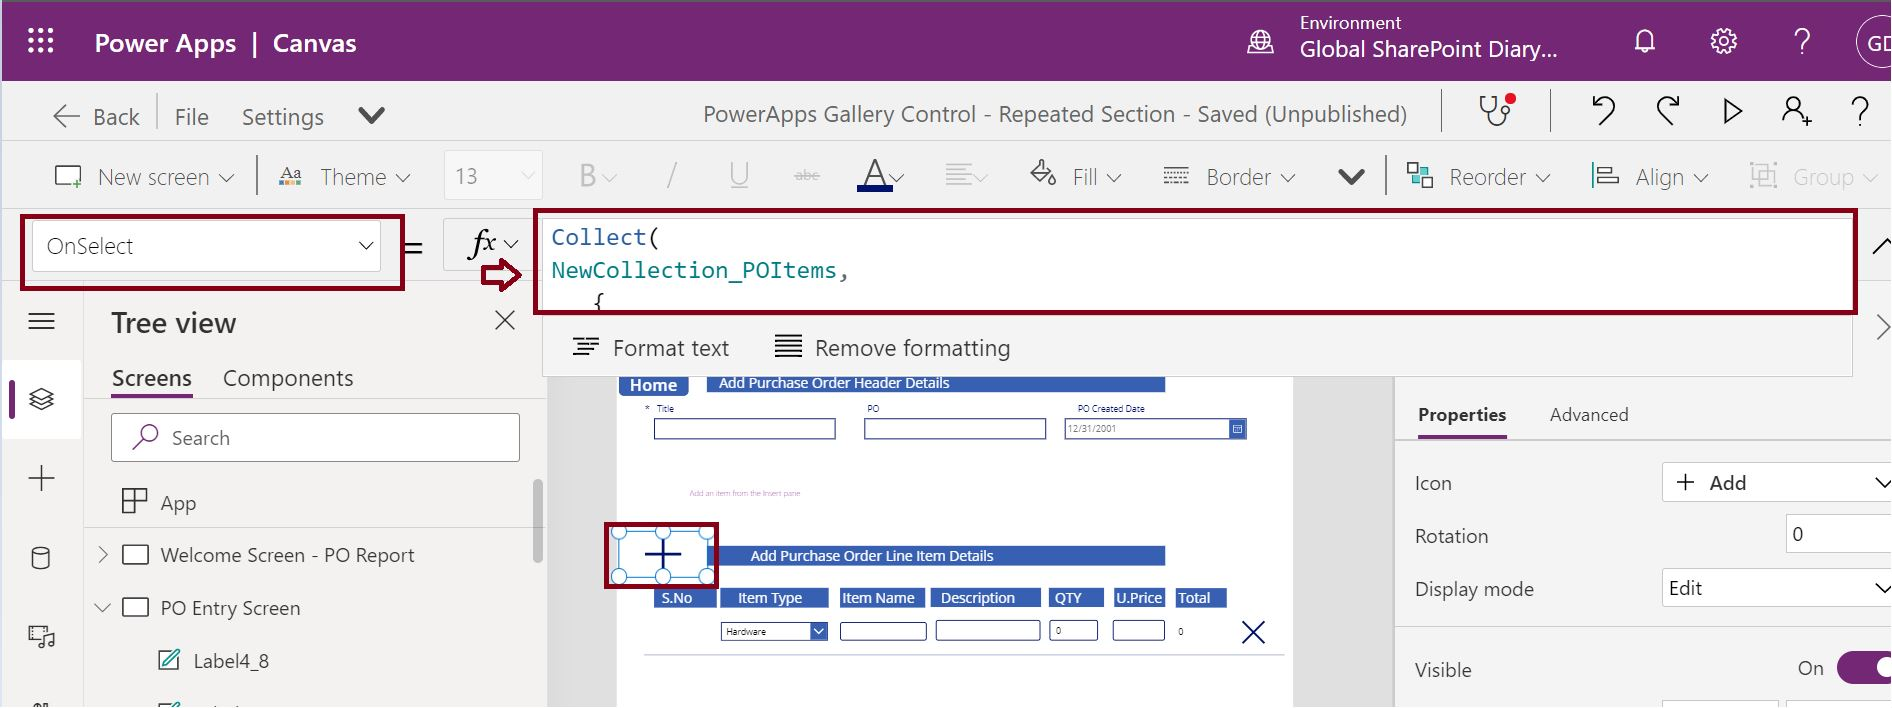 Add new item in PowerApps Gallery collection by clicking +Add icon